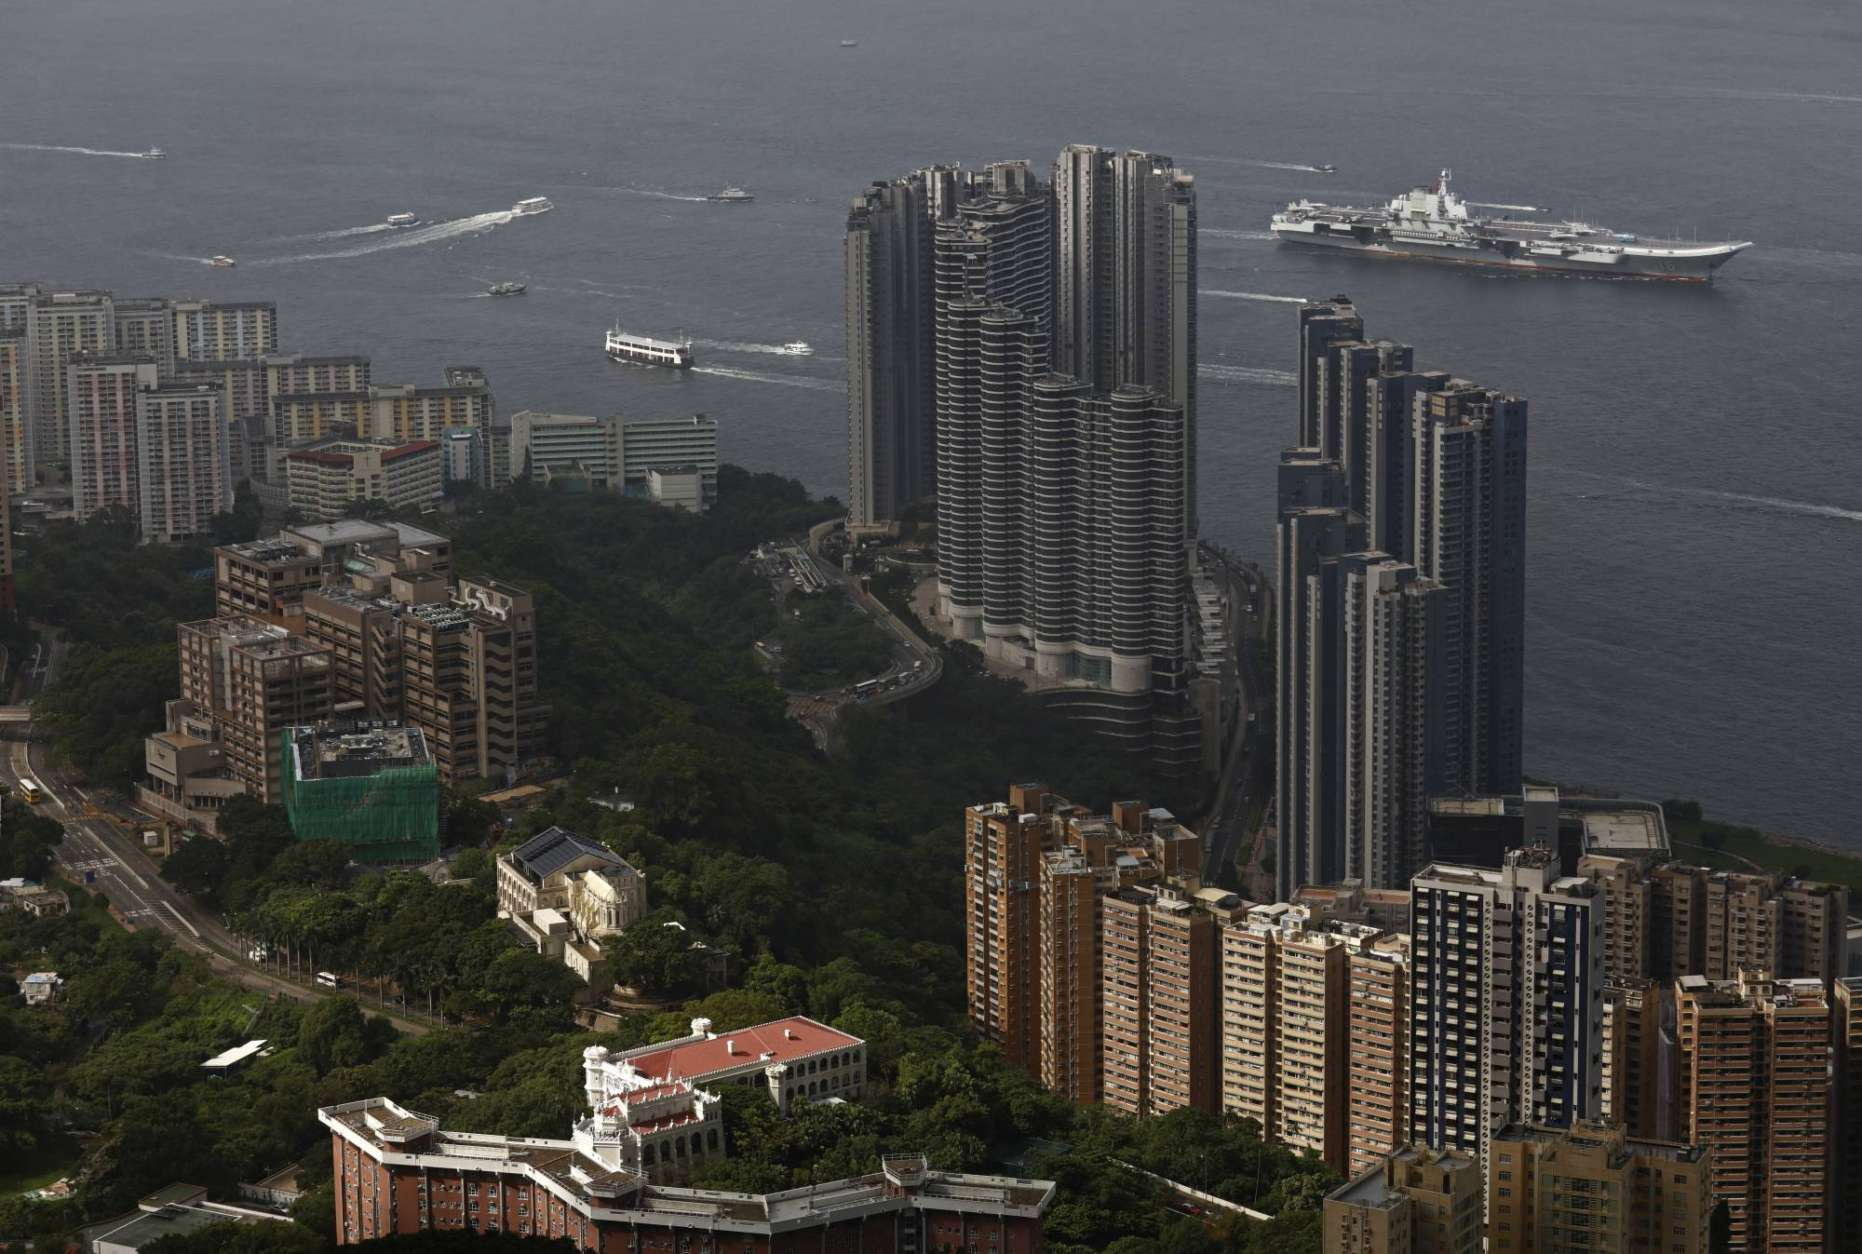 The Liaoning, China's first aircraft carrier, right top, sails into Hong Kong for a port call, Friday, July 7, 2017, to celebrate the 20th anniversary of the People's Liberation Army (PLA) garrison's presence in the semi-autonomous Chinese city and former British colony. (AP Photo/Vincent Yu)